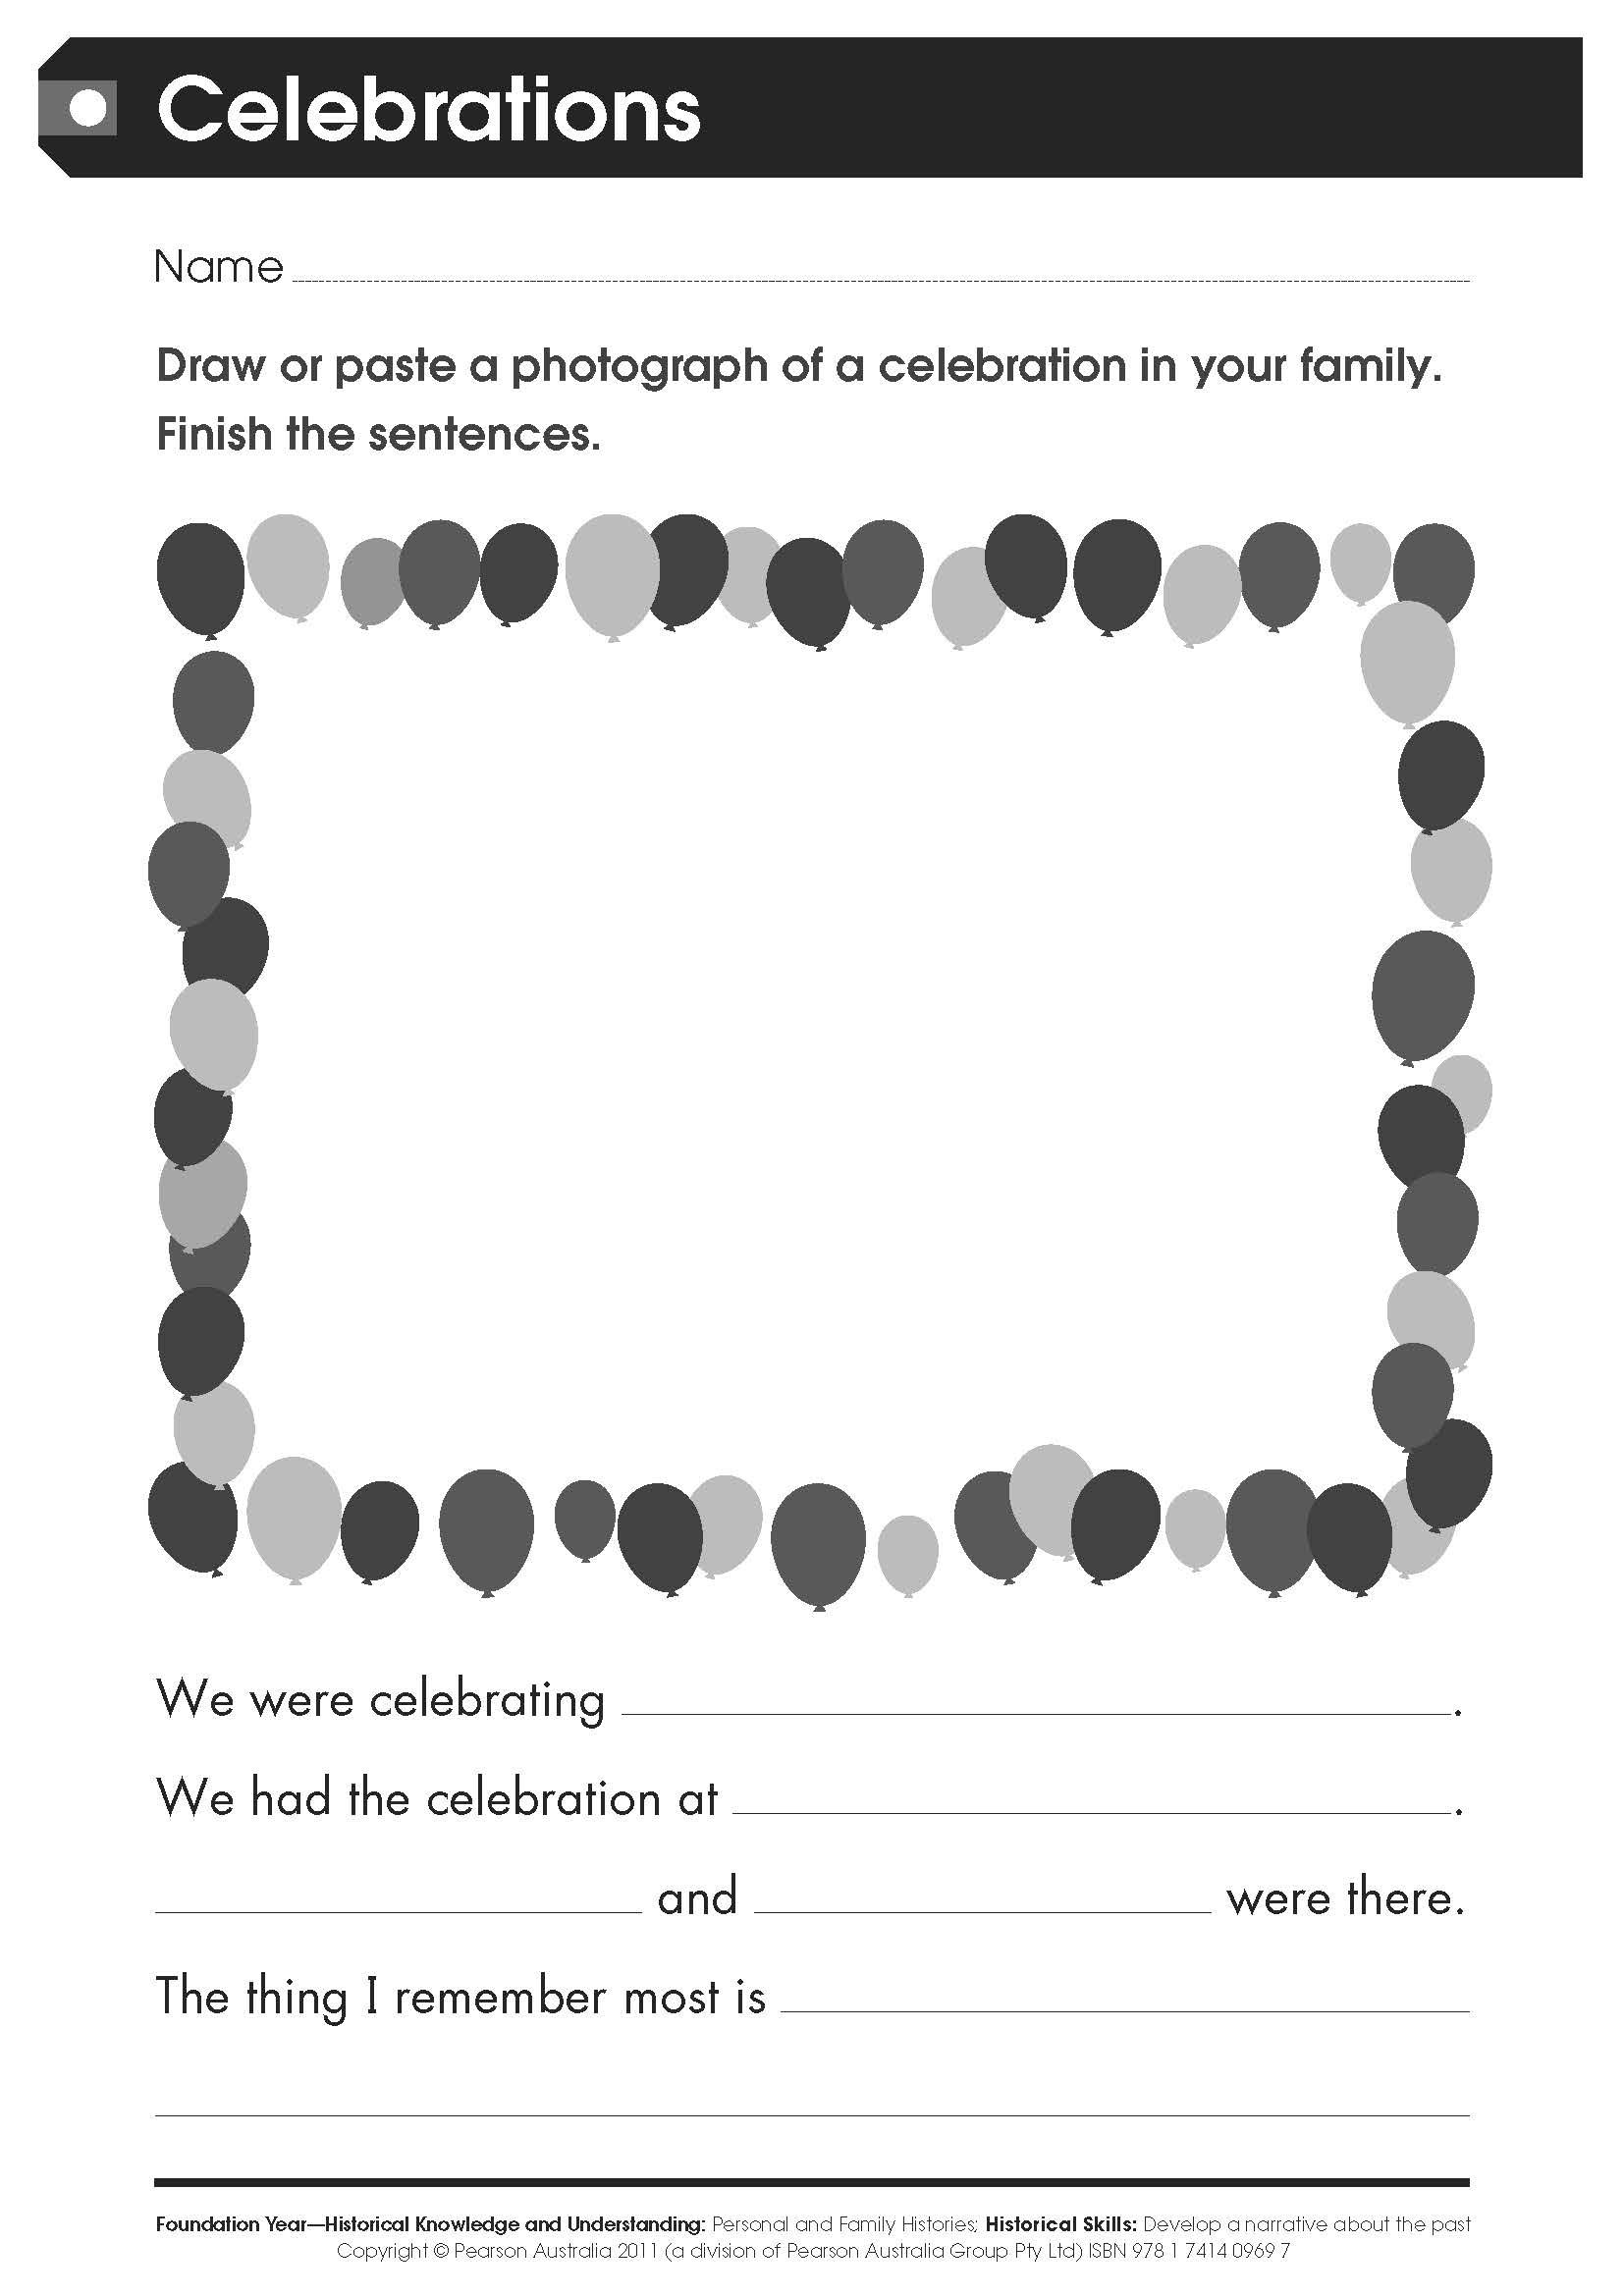 Free Worksheet Celebrations For Lower Primary Students This Worksheet Has Been Taken From Pearson Places Hi Primary History Primary Students Worksheets Free [ 2339 x 1654 Pixel ]